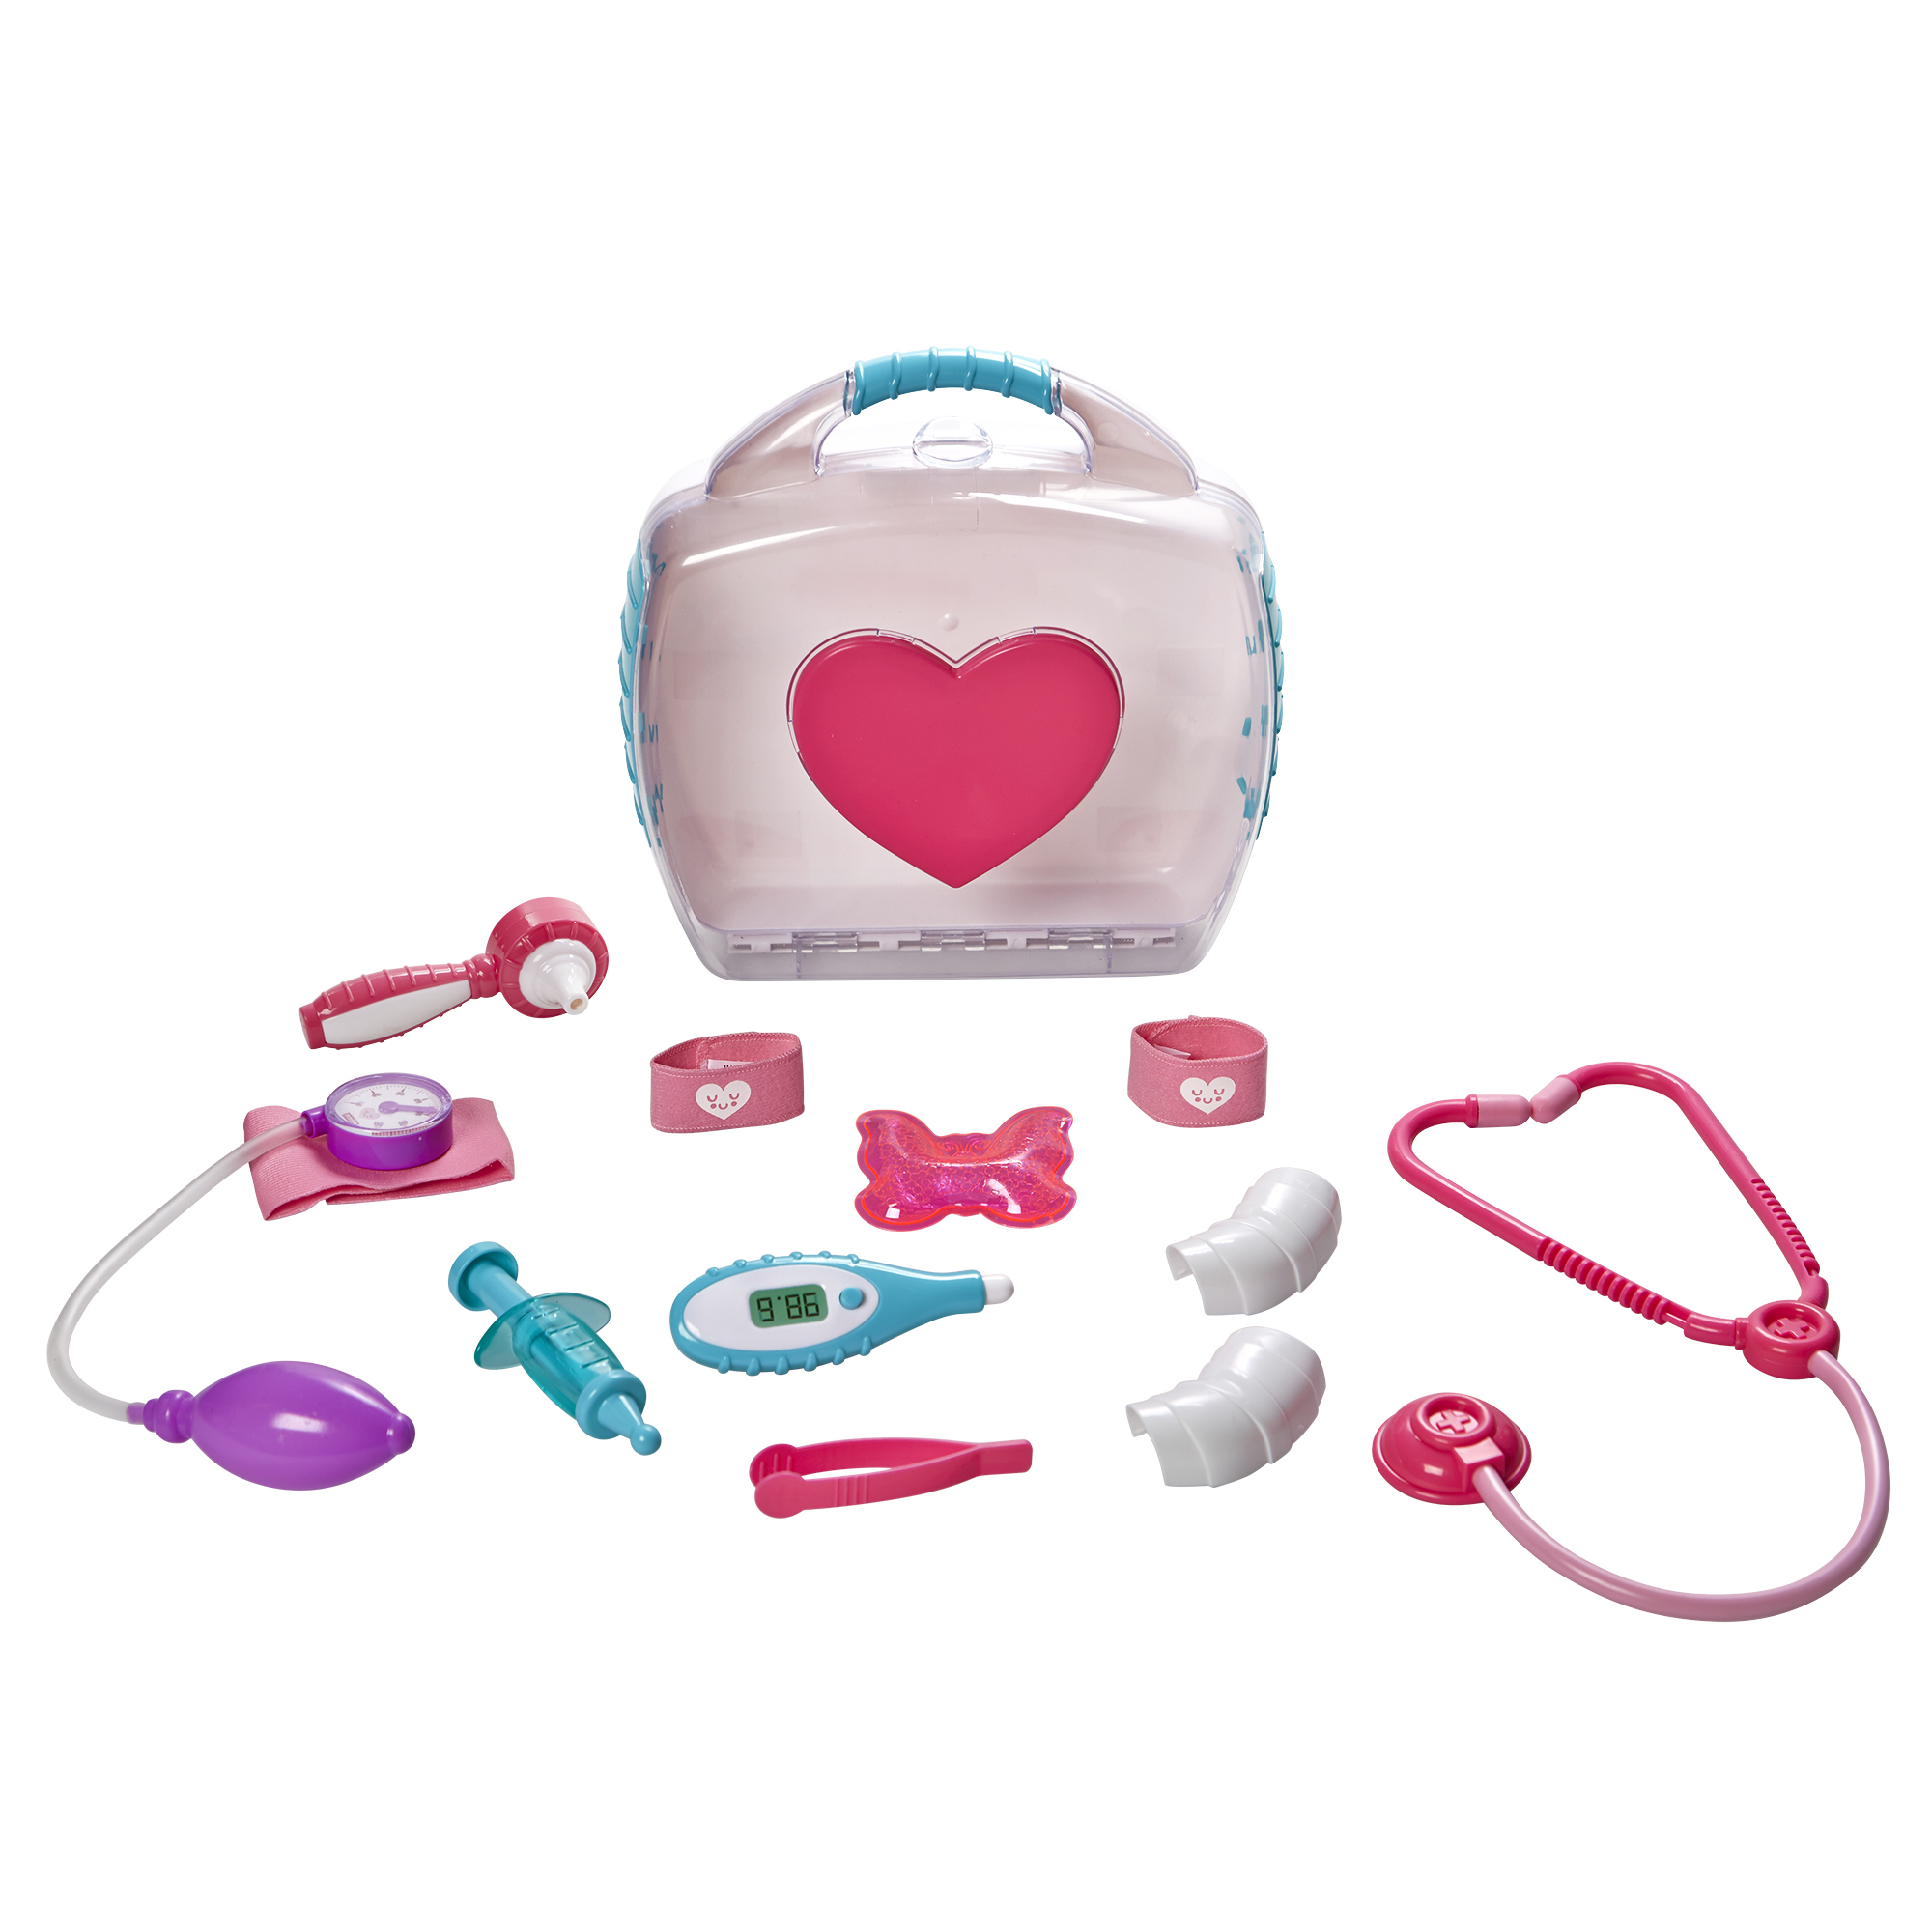 Perfectly Cute Baby Take Care Doctor Kit